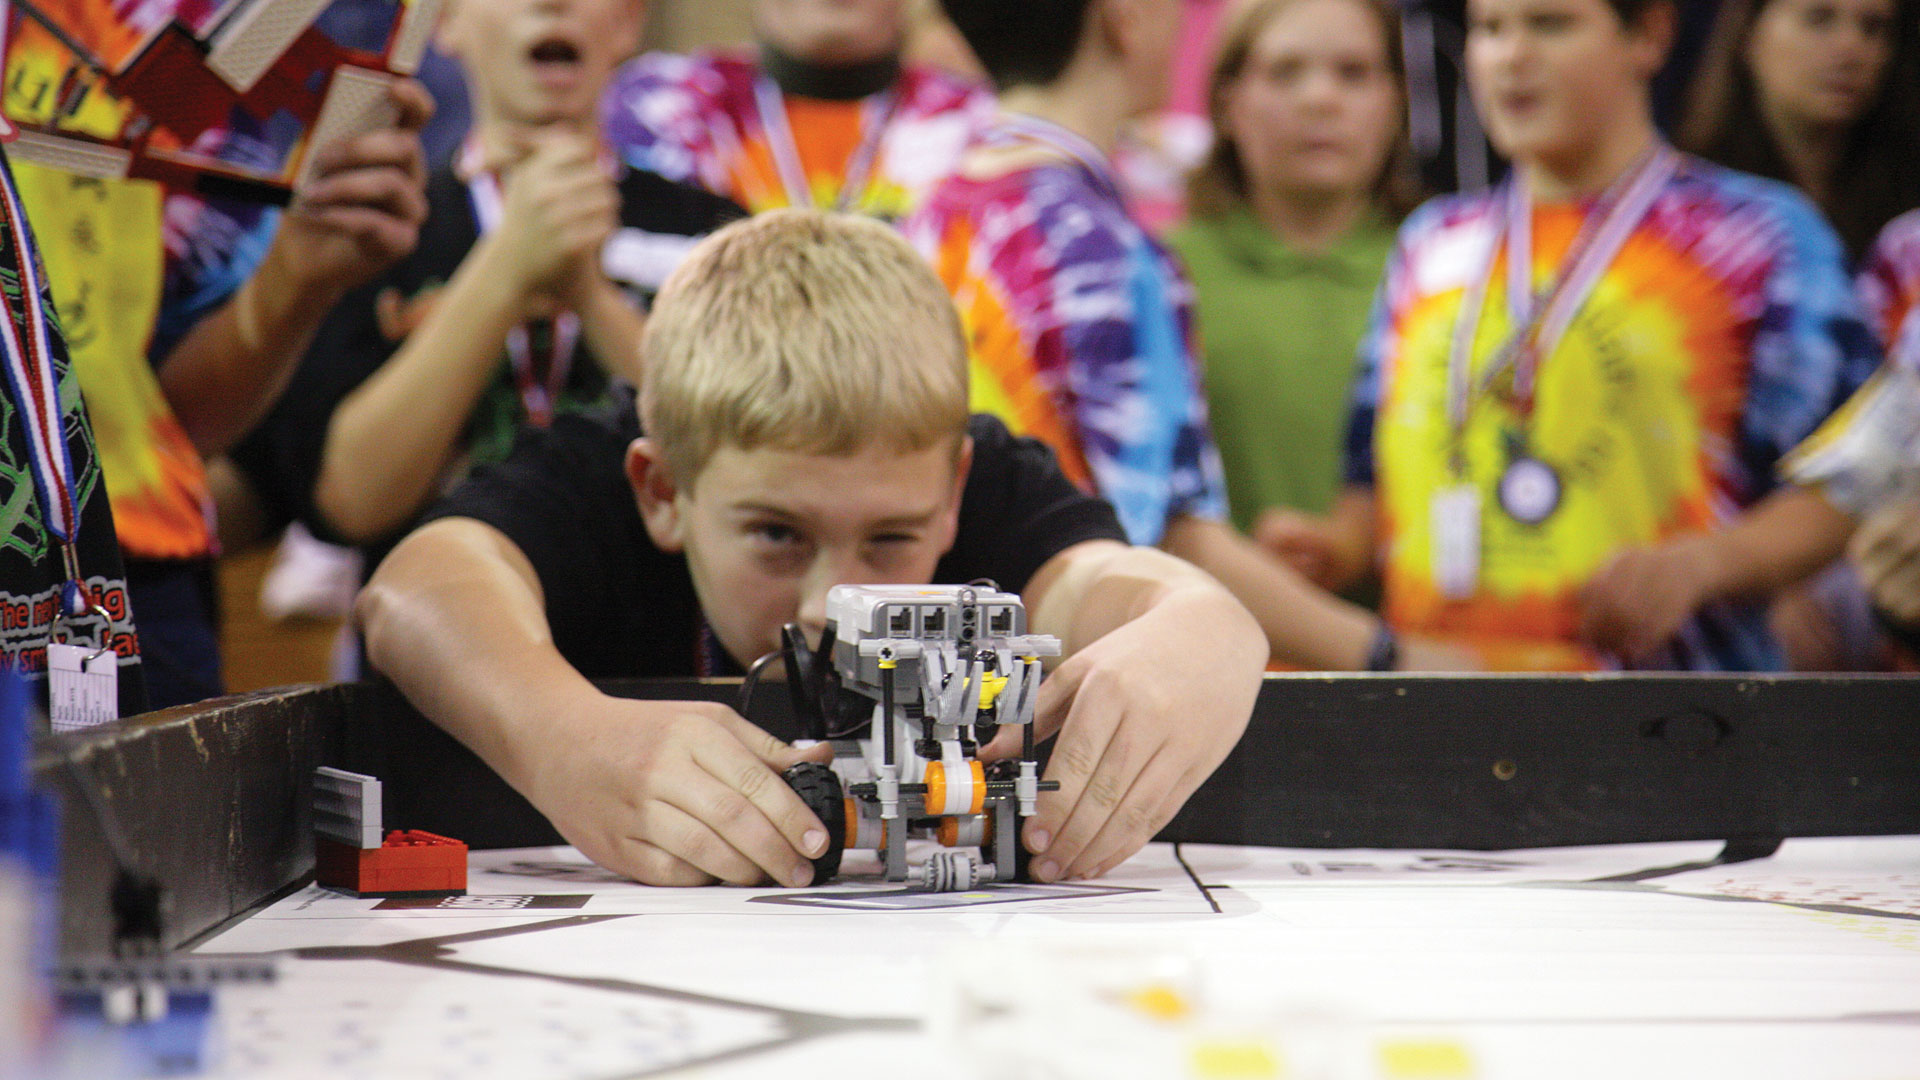 Boy at robotics competition